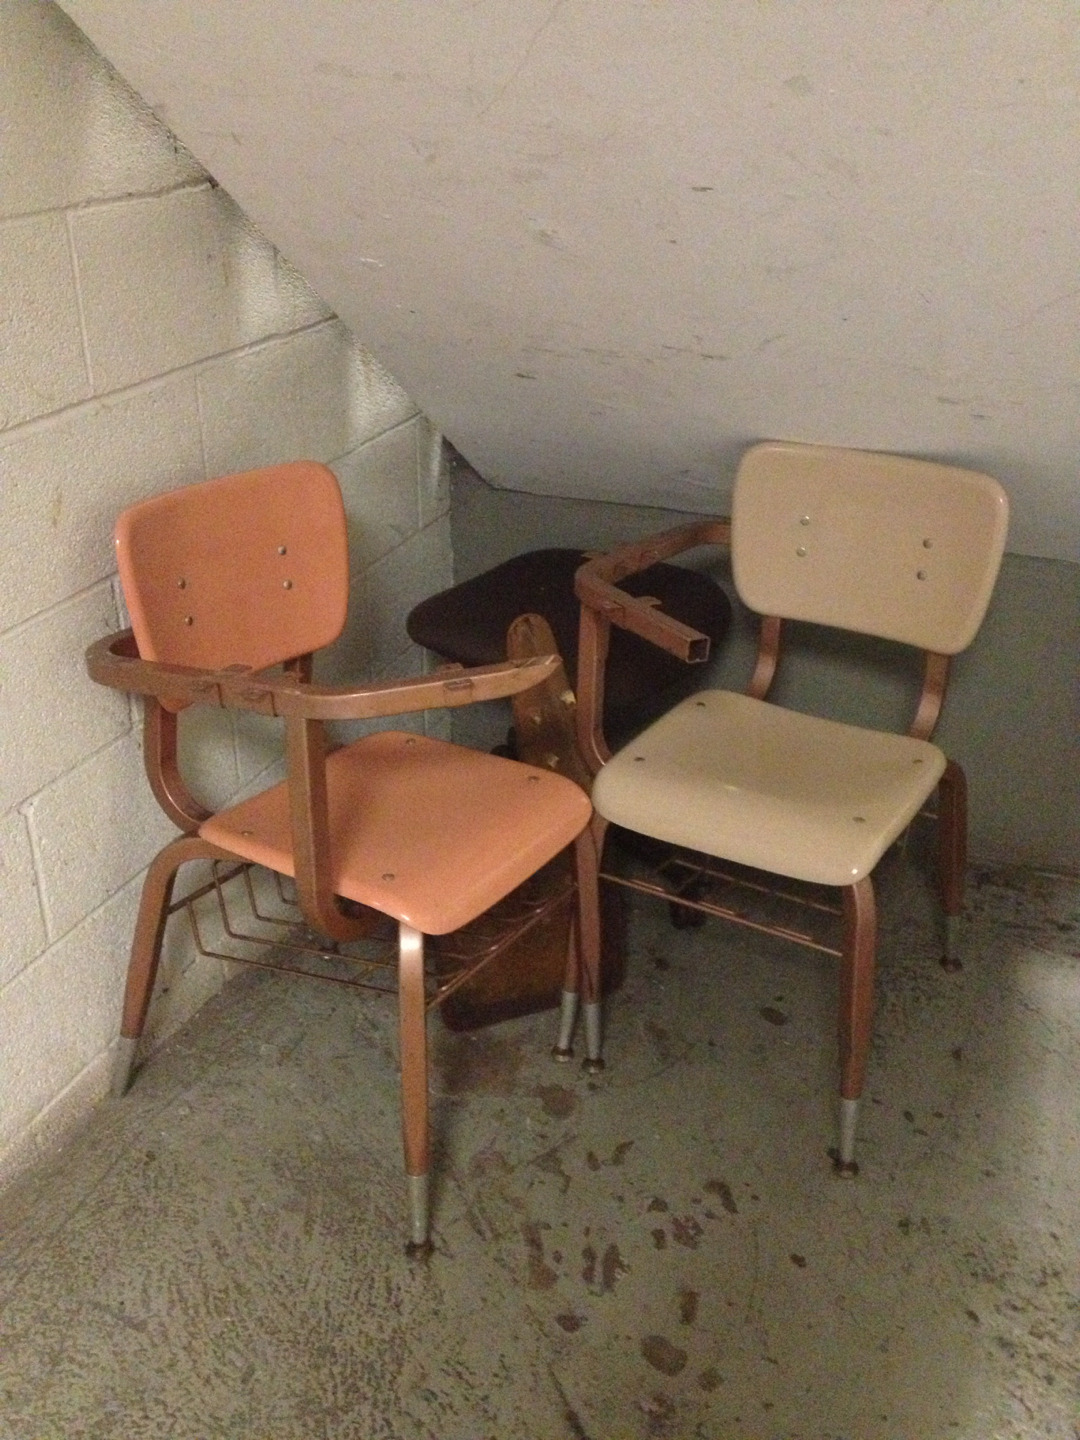 Forgotten chairs